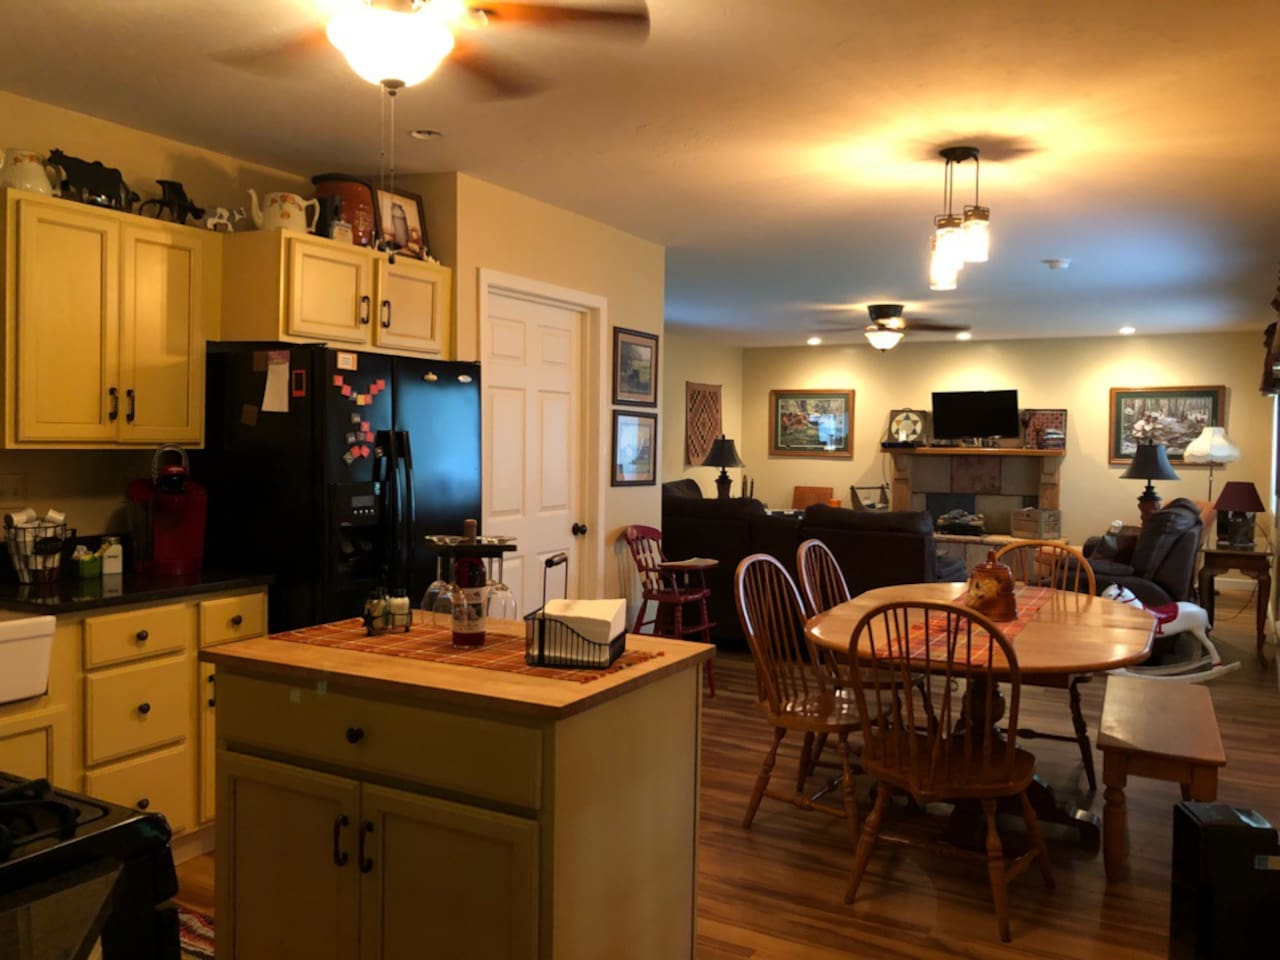 Beyond the kitchen and dining area is a cozy living room.